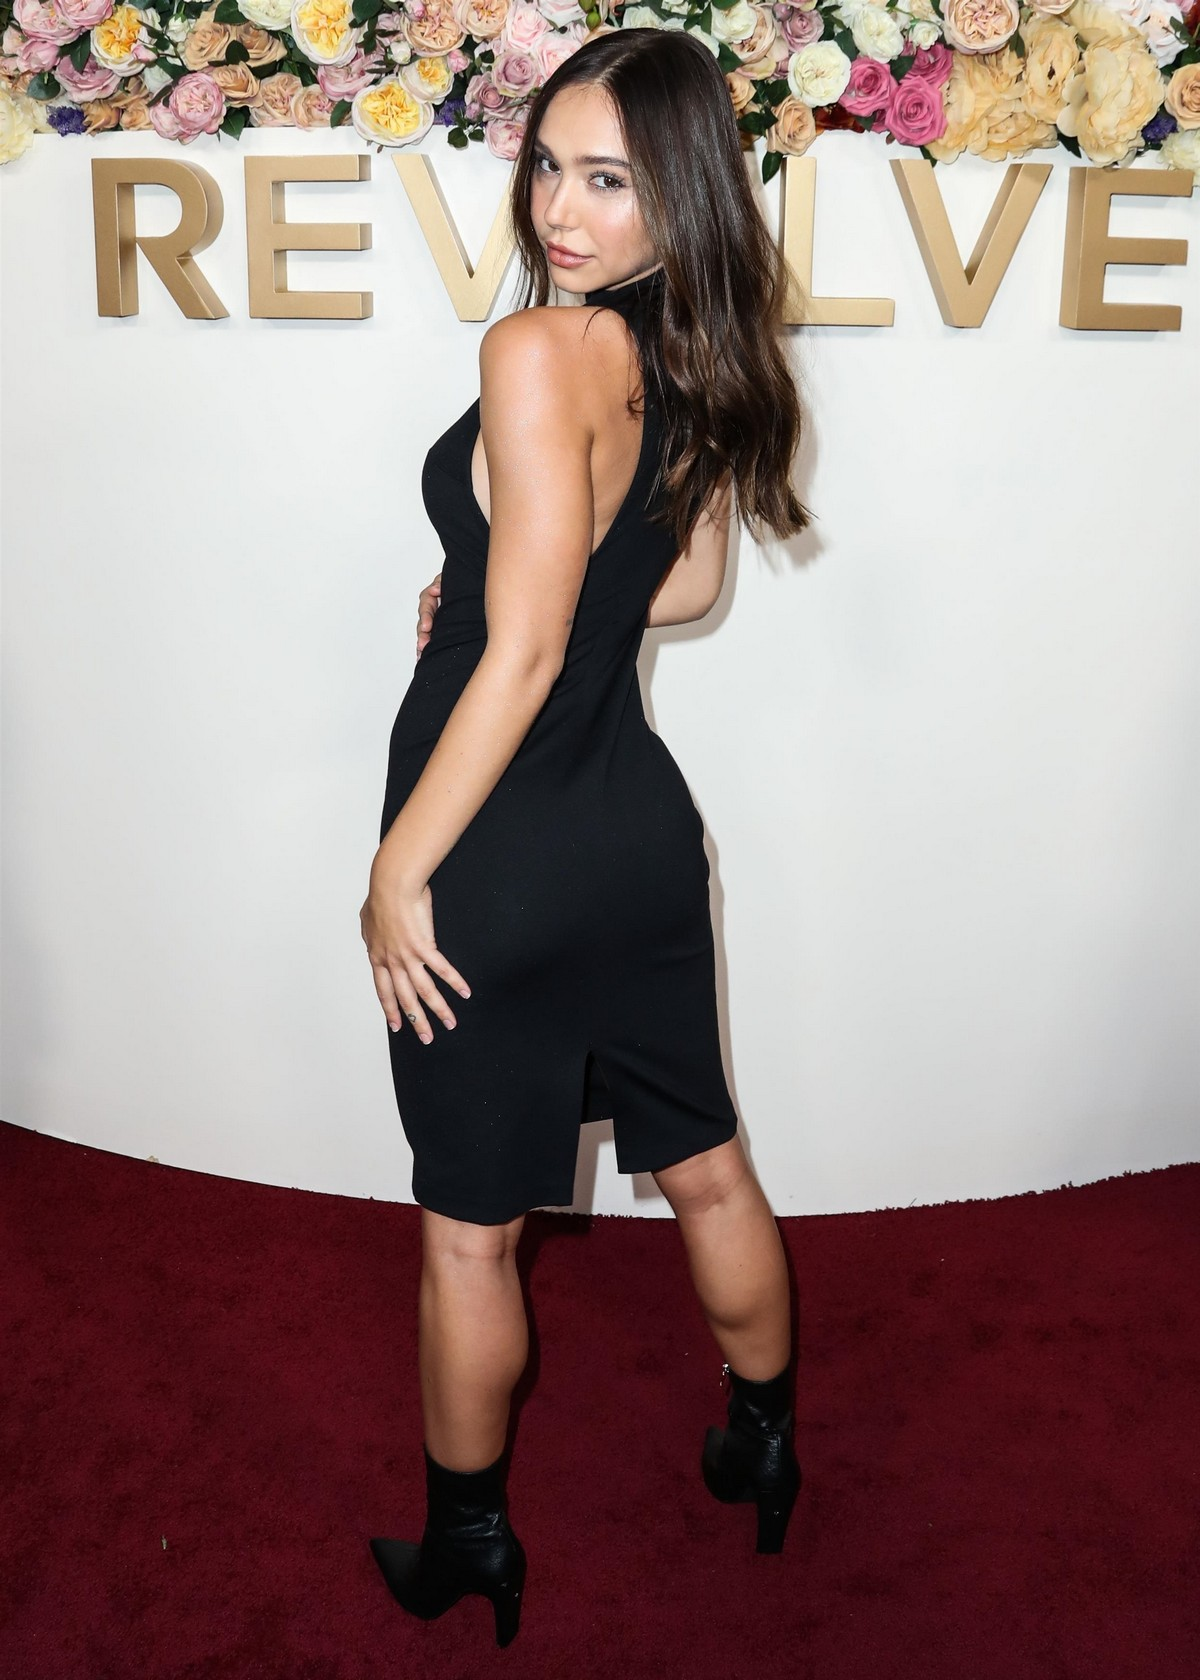 Alexis Ren in Black Dress at 3rd Annual #Revolve Awards in Hollywood 2019/11/15 12